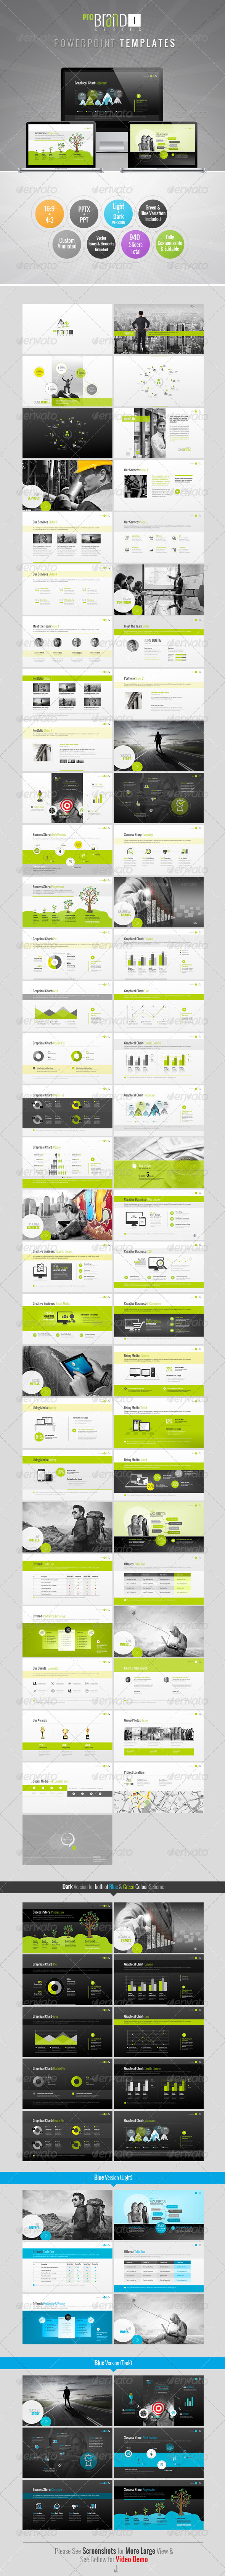 GraphicRiver ProBrand PowerPoint Templates 6035121